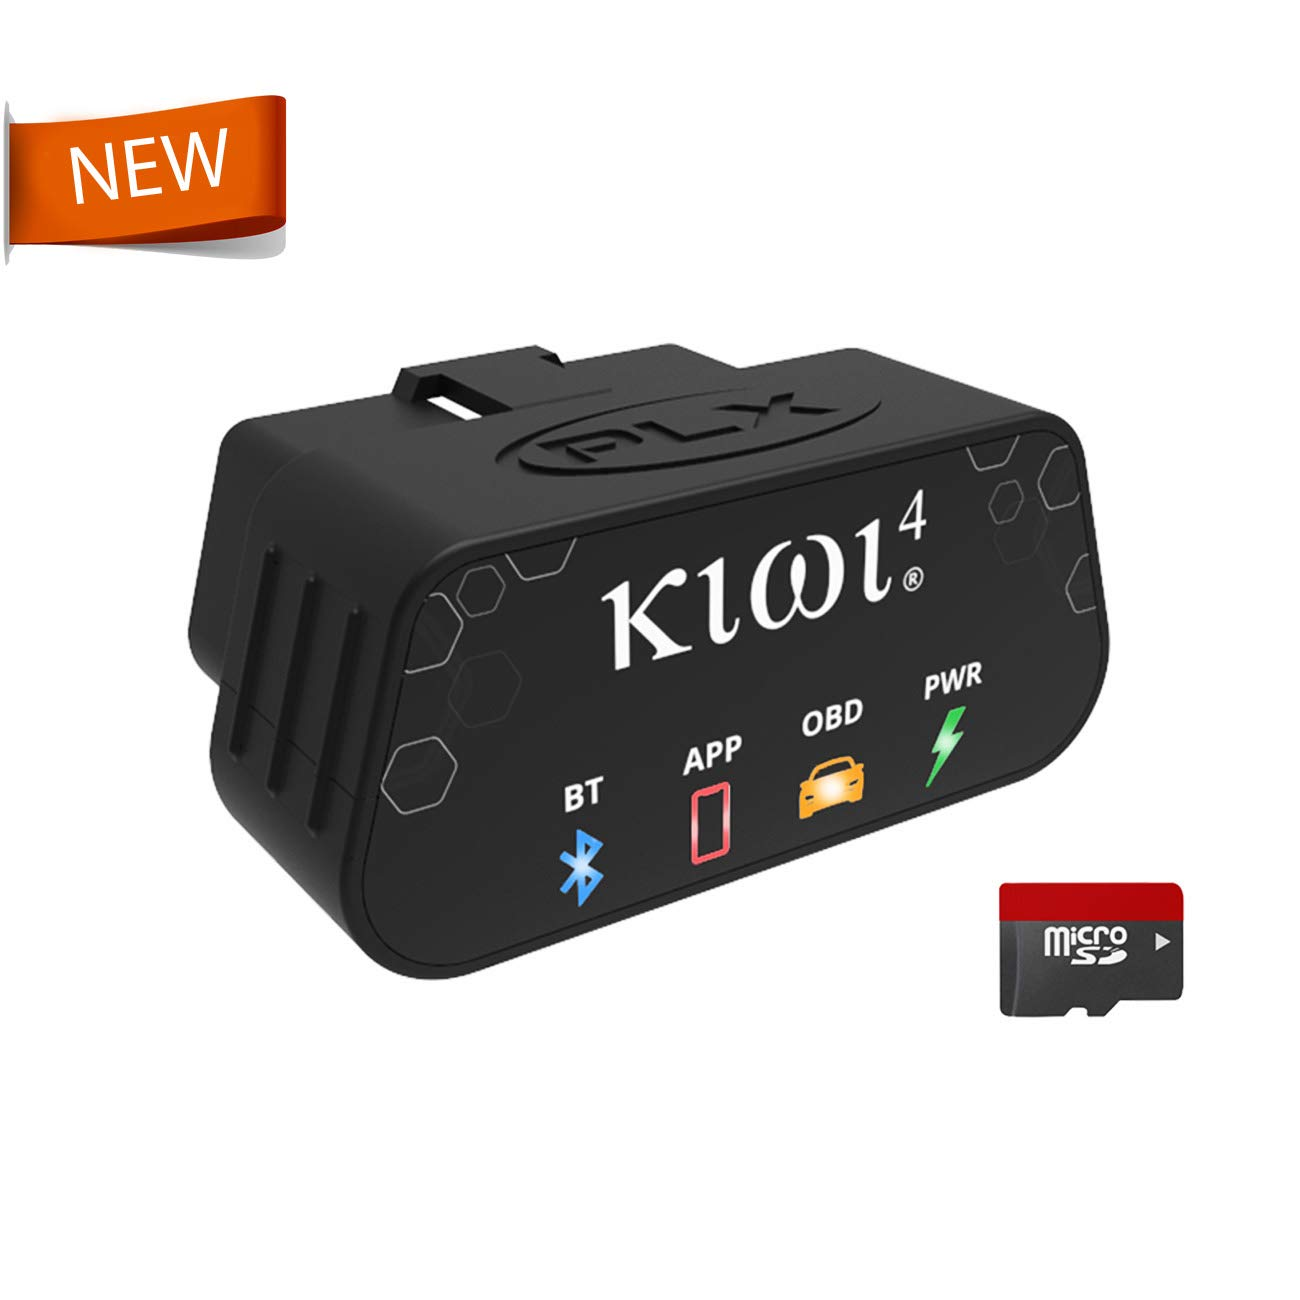 *NEW* PLX Devices Kiwi 4 Bluetooth OBD2 OBDII Diagnostic Scan Tool for Apple and Android